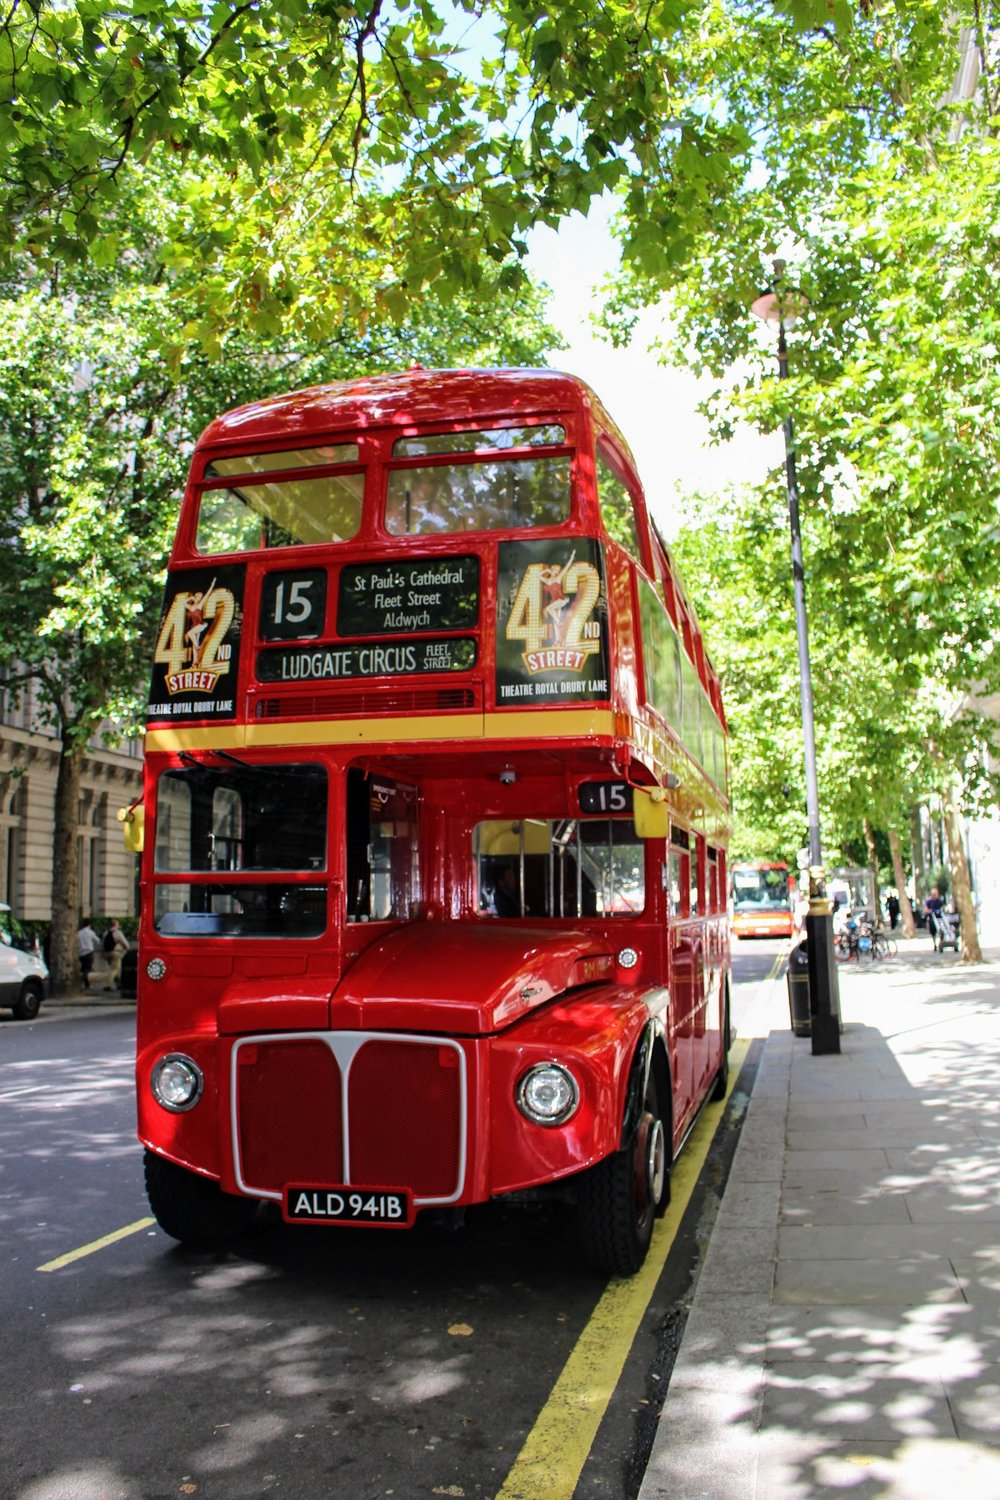 I had to get a pic of the iconic double deckers! I did not ride in one. :(